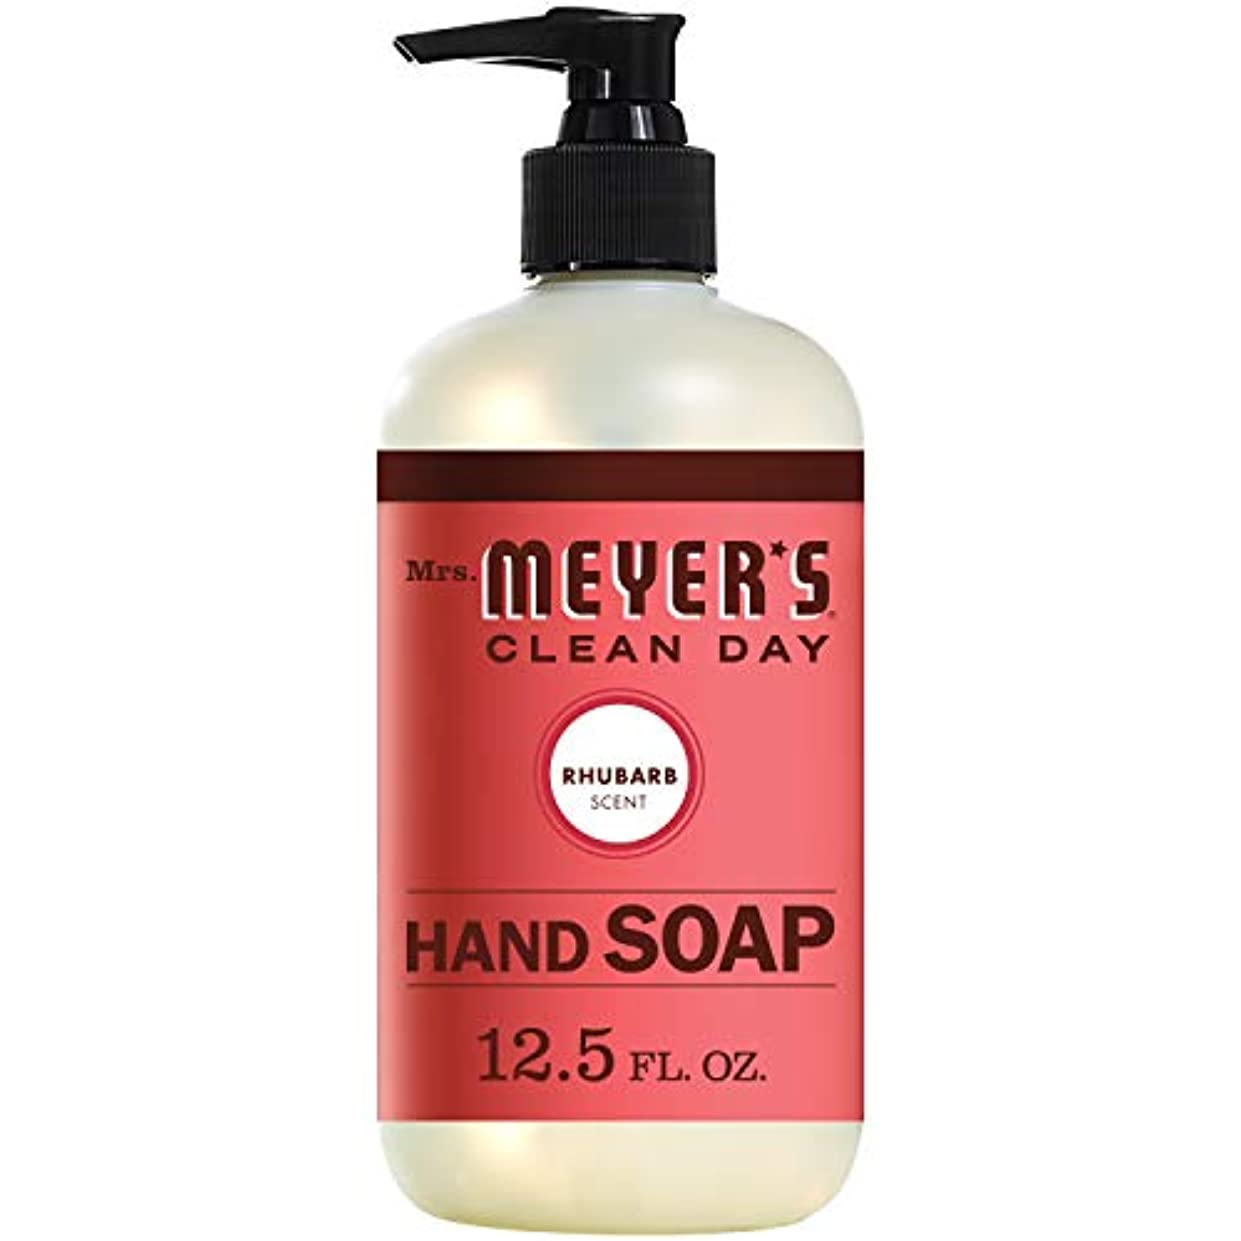 副産物シリーズ気づくなるMrs. Meyers Clean Day, Liquid Hand Soap, Rhubarb Scent, 12.5 fl oz (370 ml)